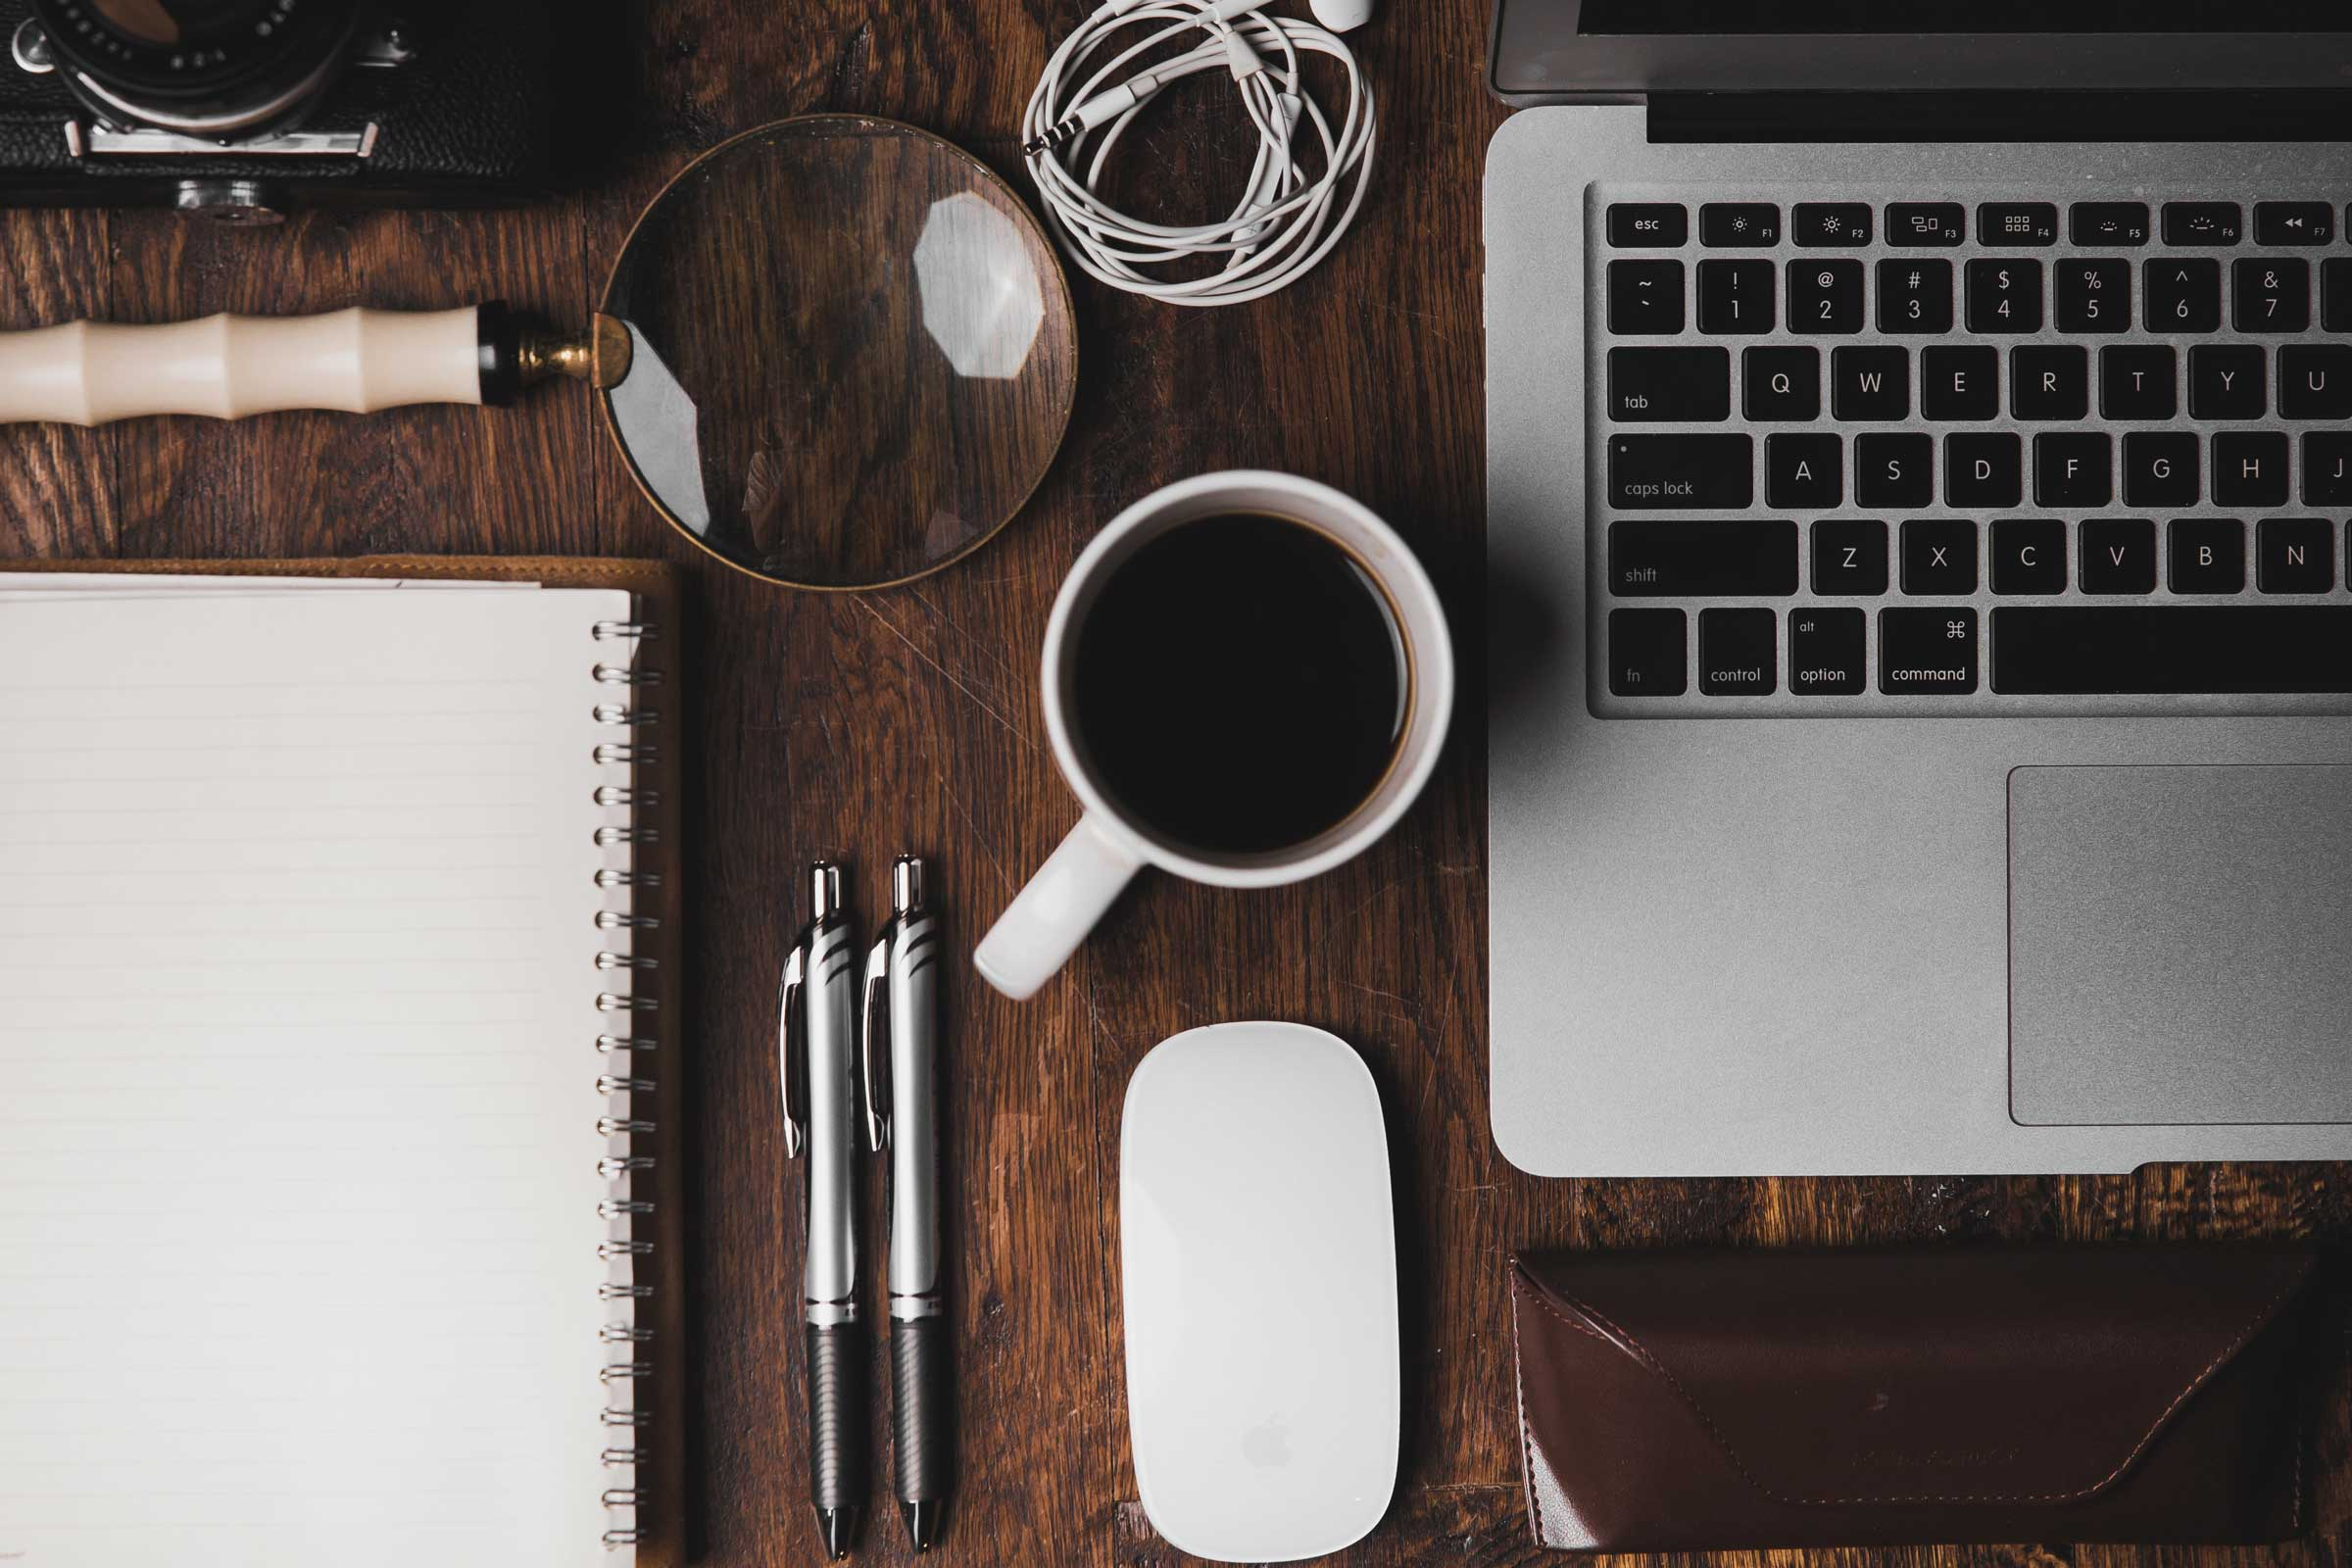 8 Amazing Websites and Focus Apps to Help Maintain Focus